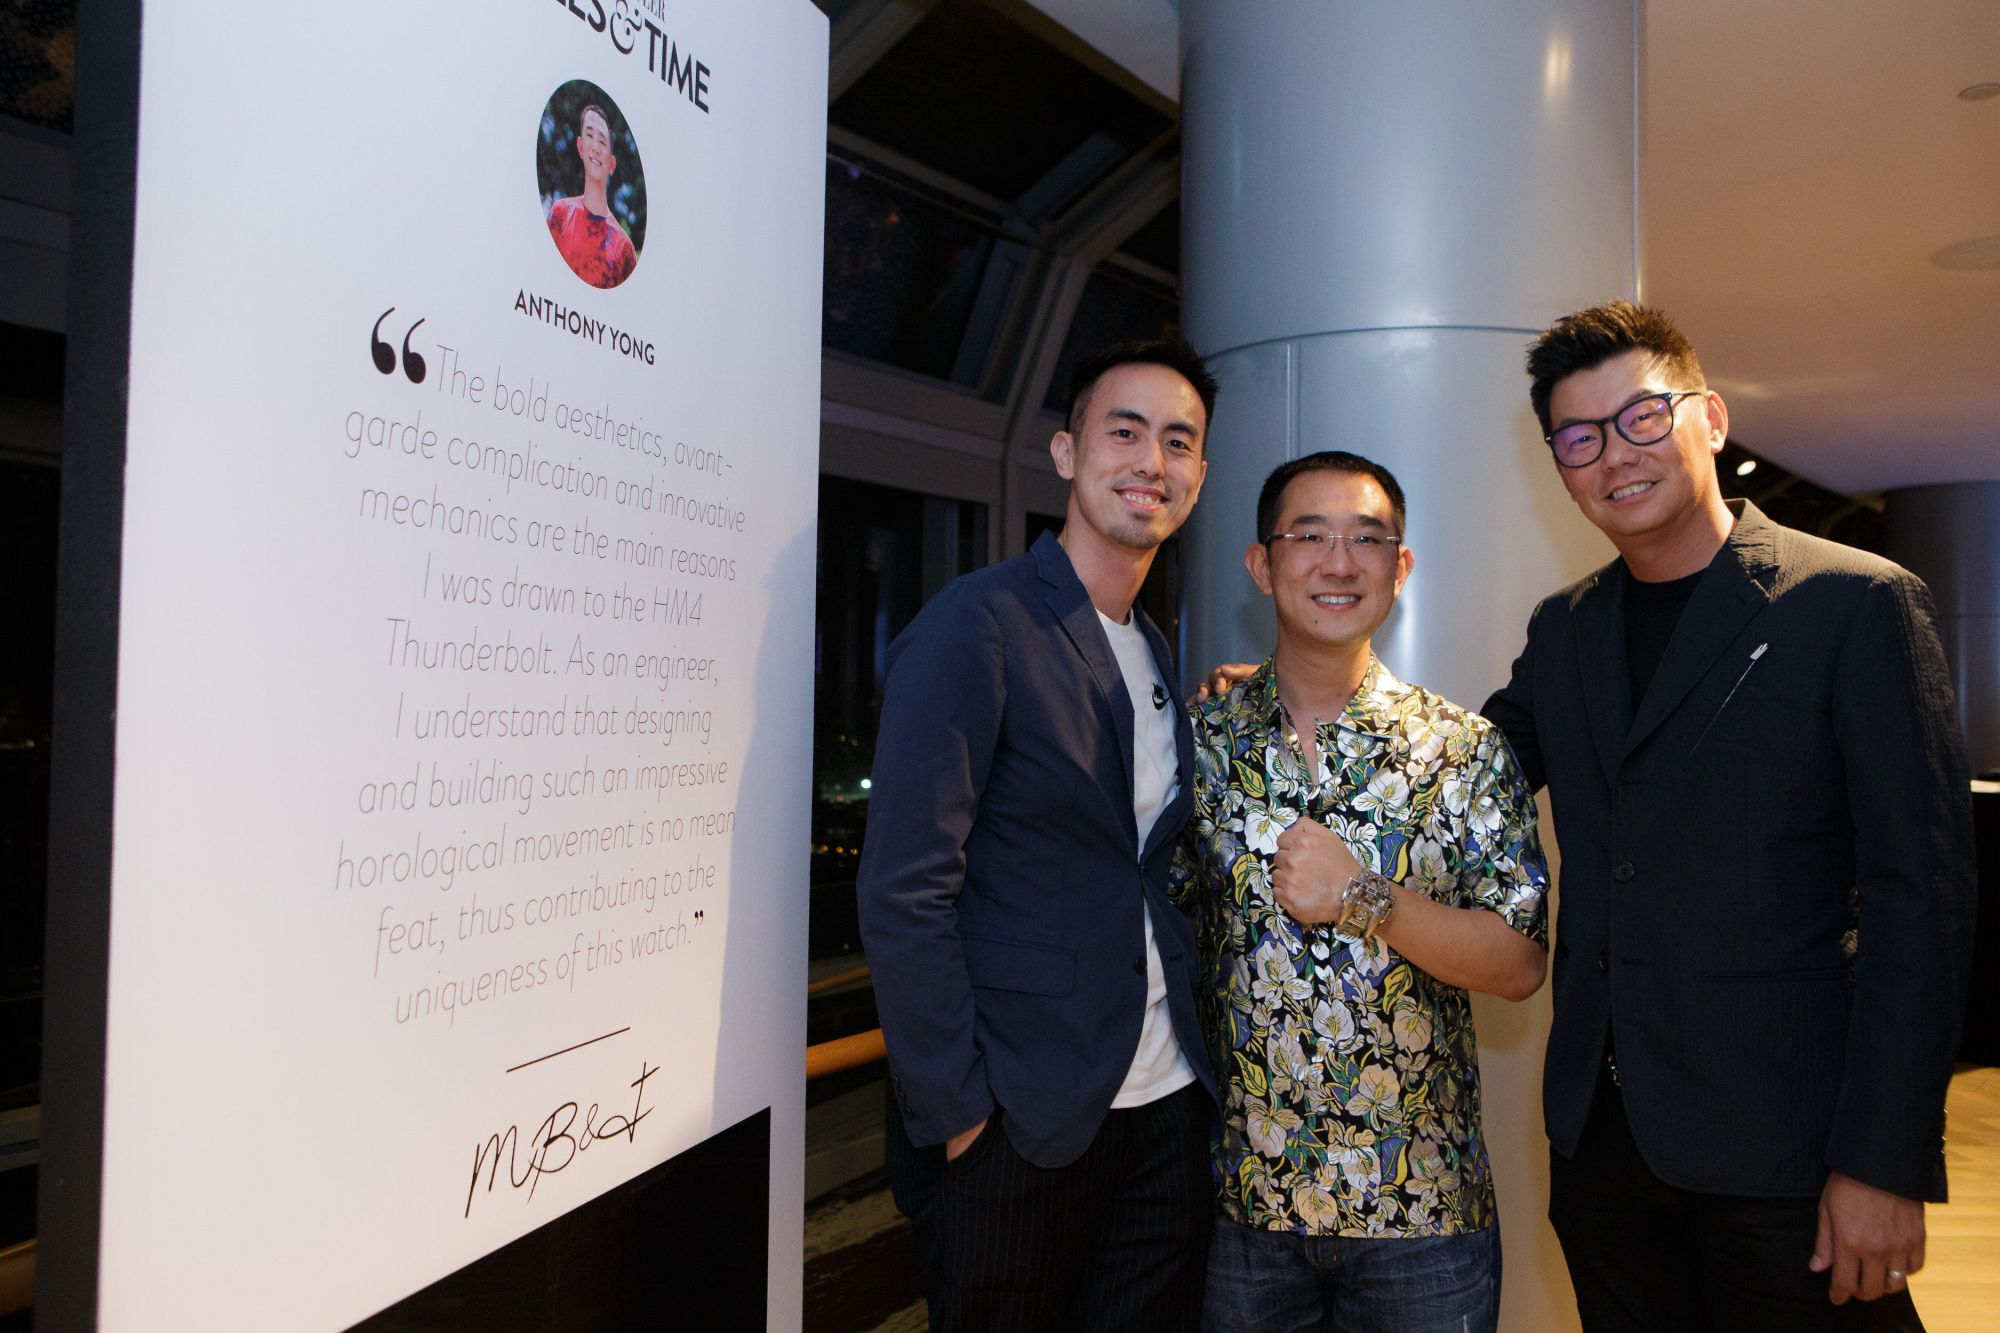 Terence Lim, Anthony Yong, Alfred Chua